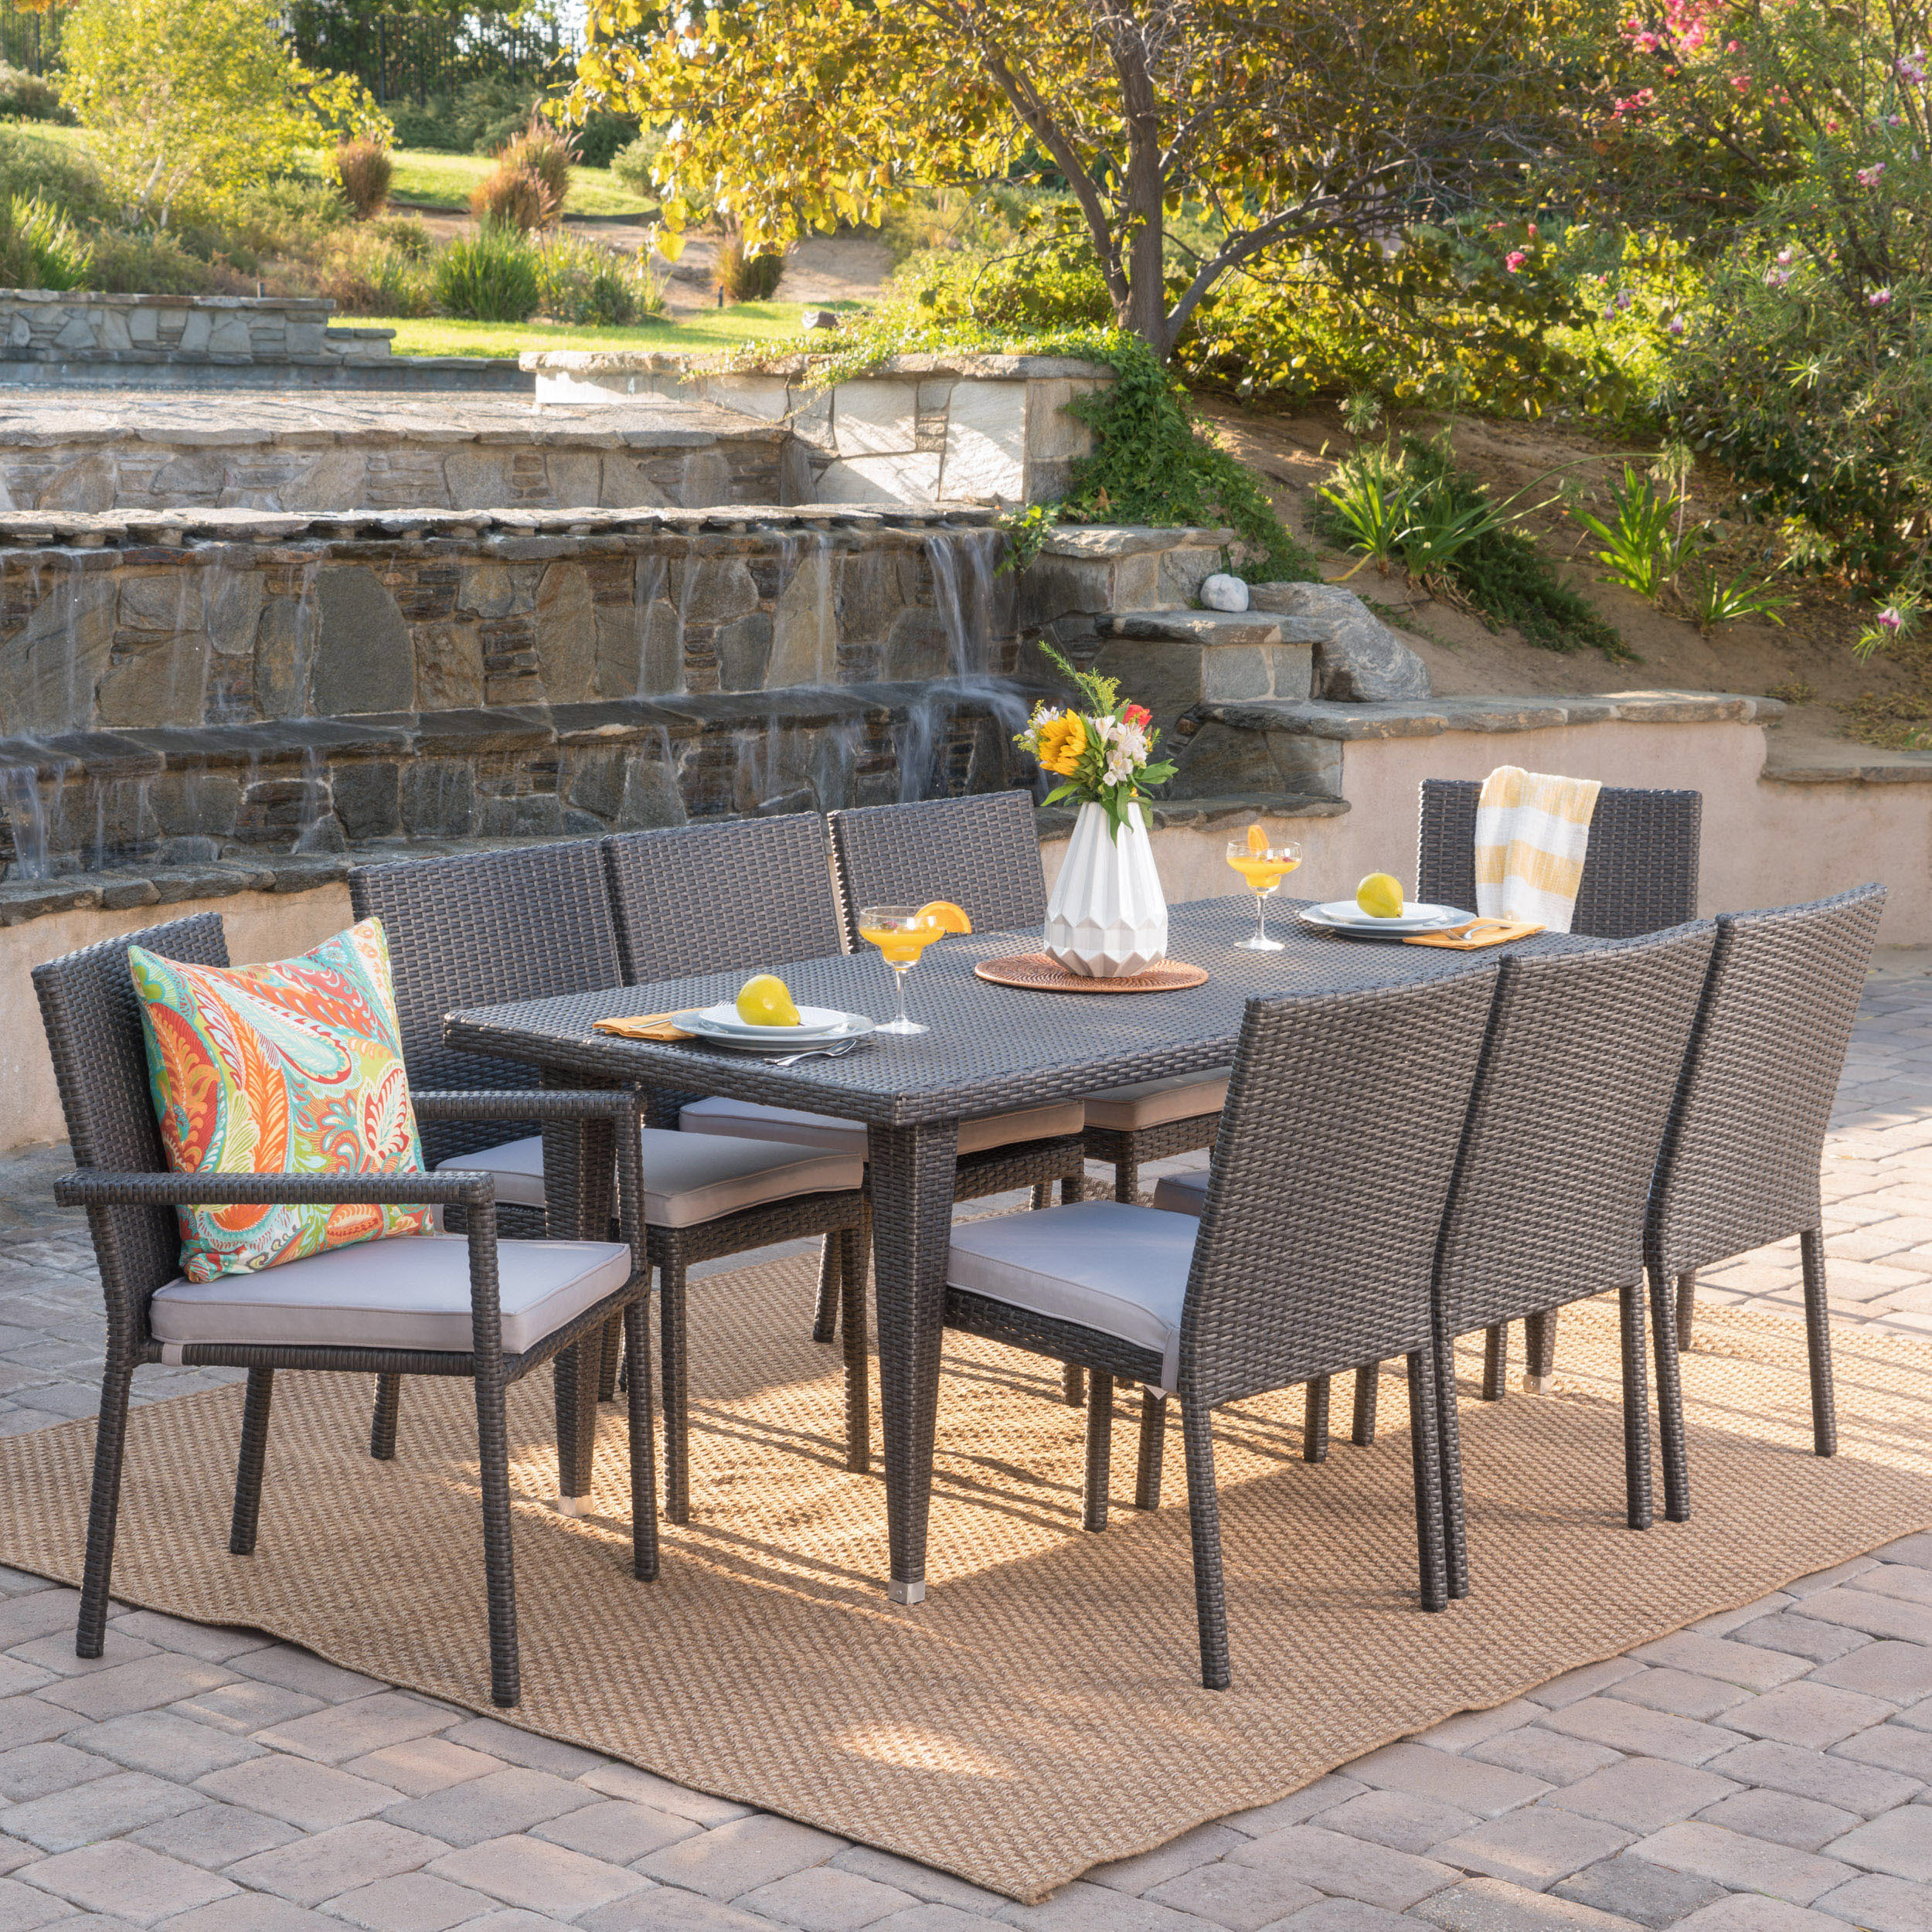 Granger Outdoor 9 Piece Wicker Rectangular Dining Set with Cushions, Grey, Silver